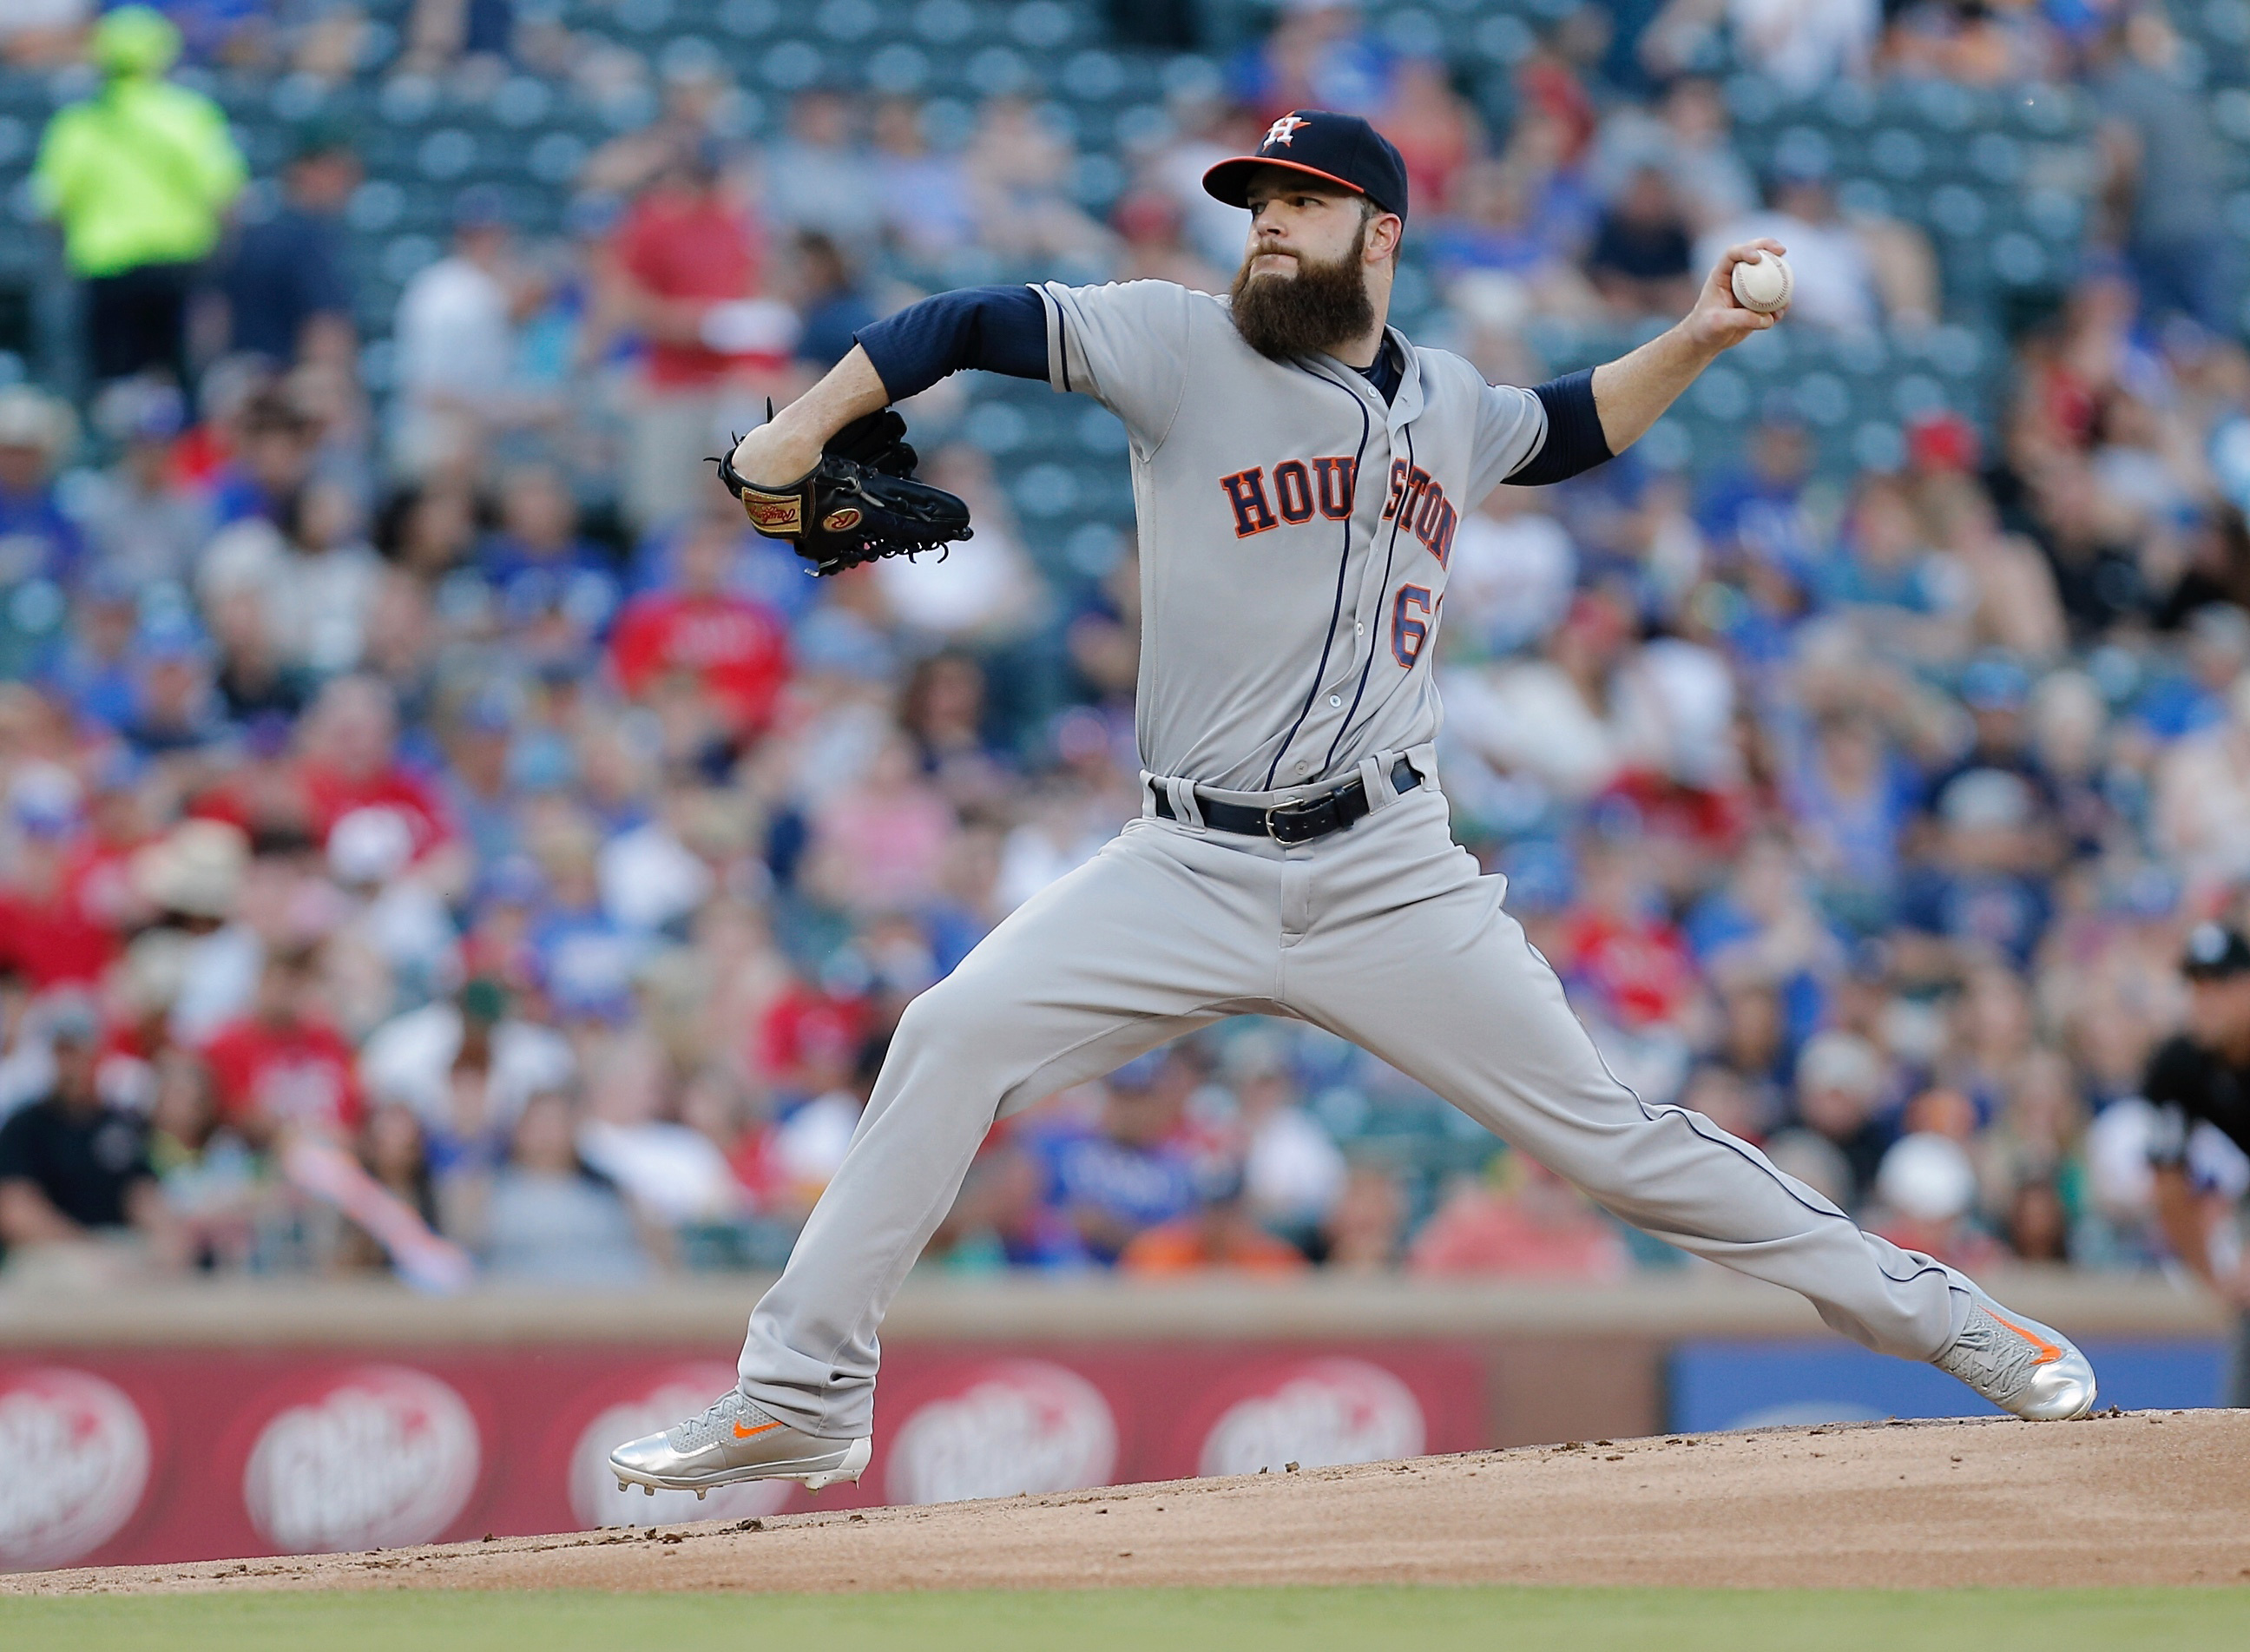 Houston Astros starting pitcher Dallas Keuchel throws during the first inning of a baseball game against the Texas Rangers on Tuesday, June 7, 2016, in Arlington, Texas. (AP Photo/Brandon Wade)